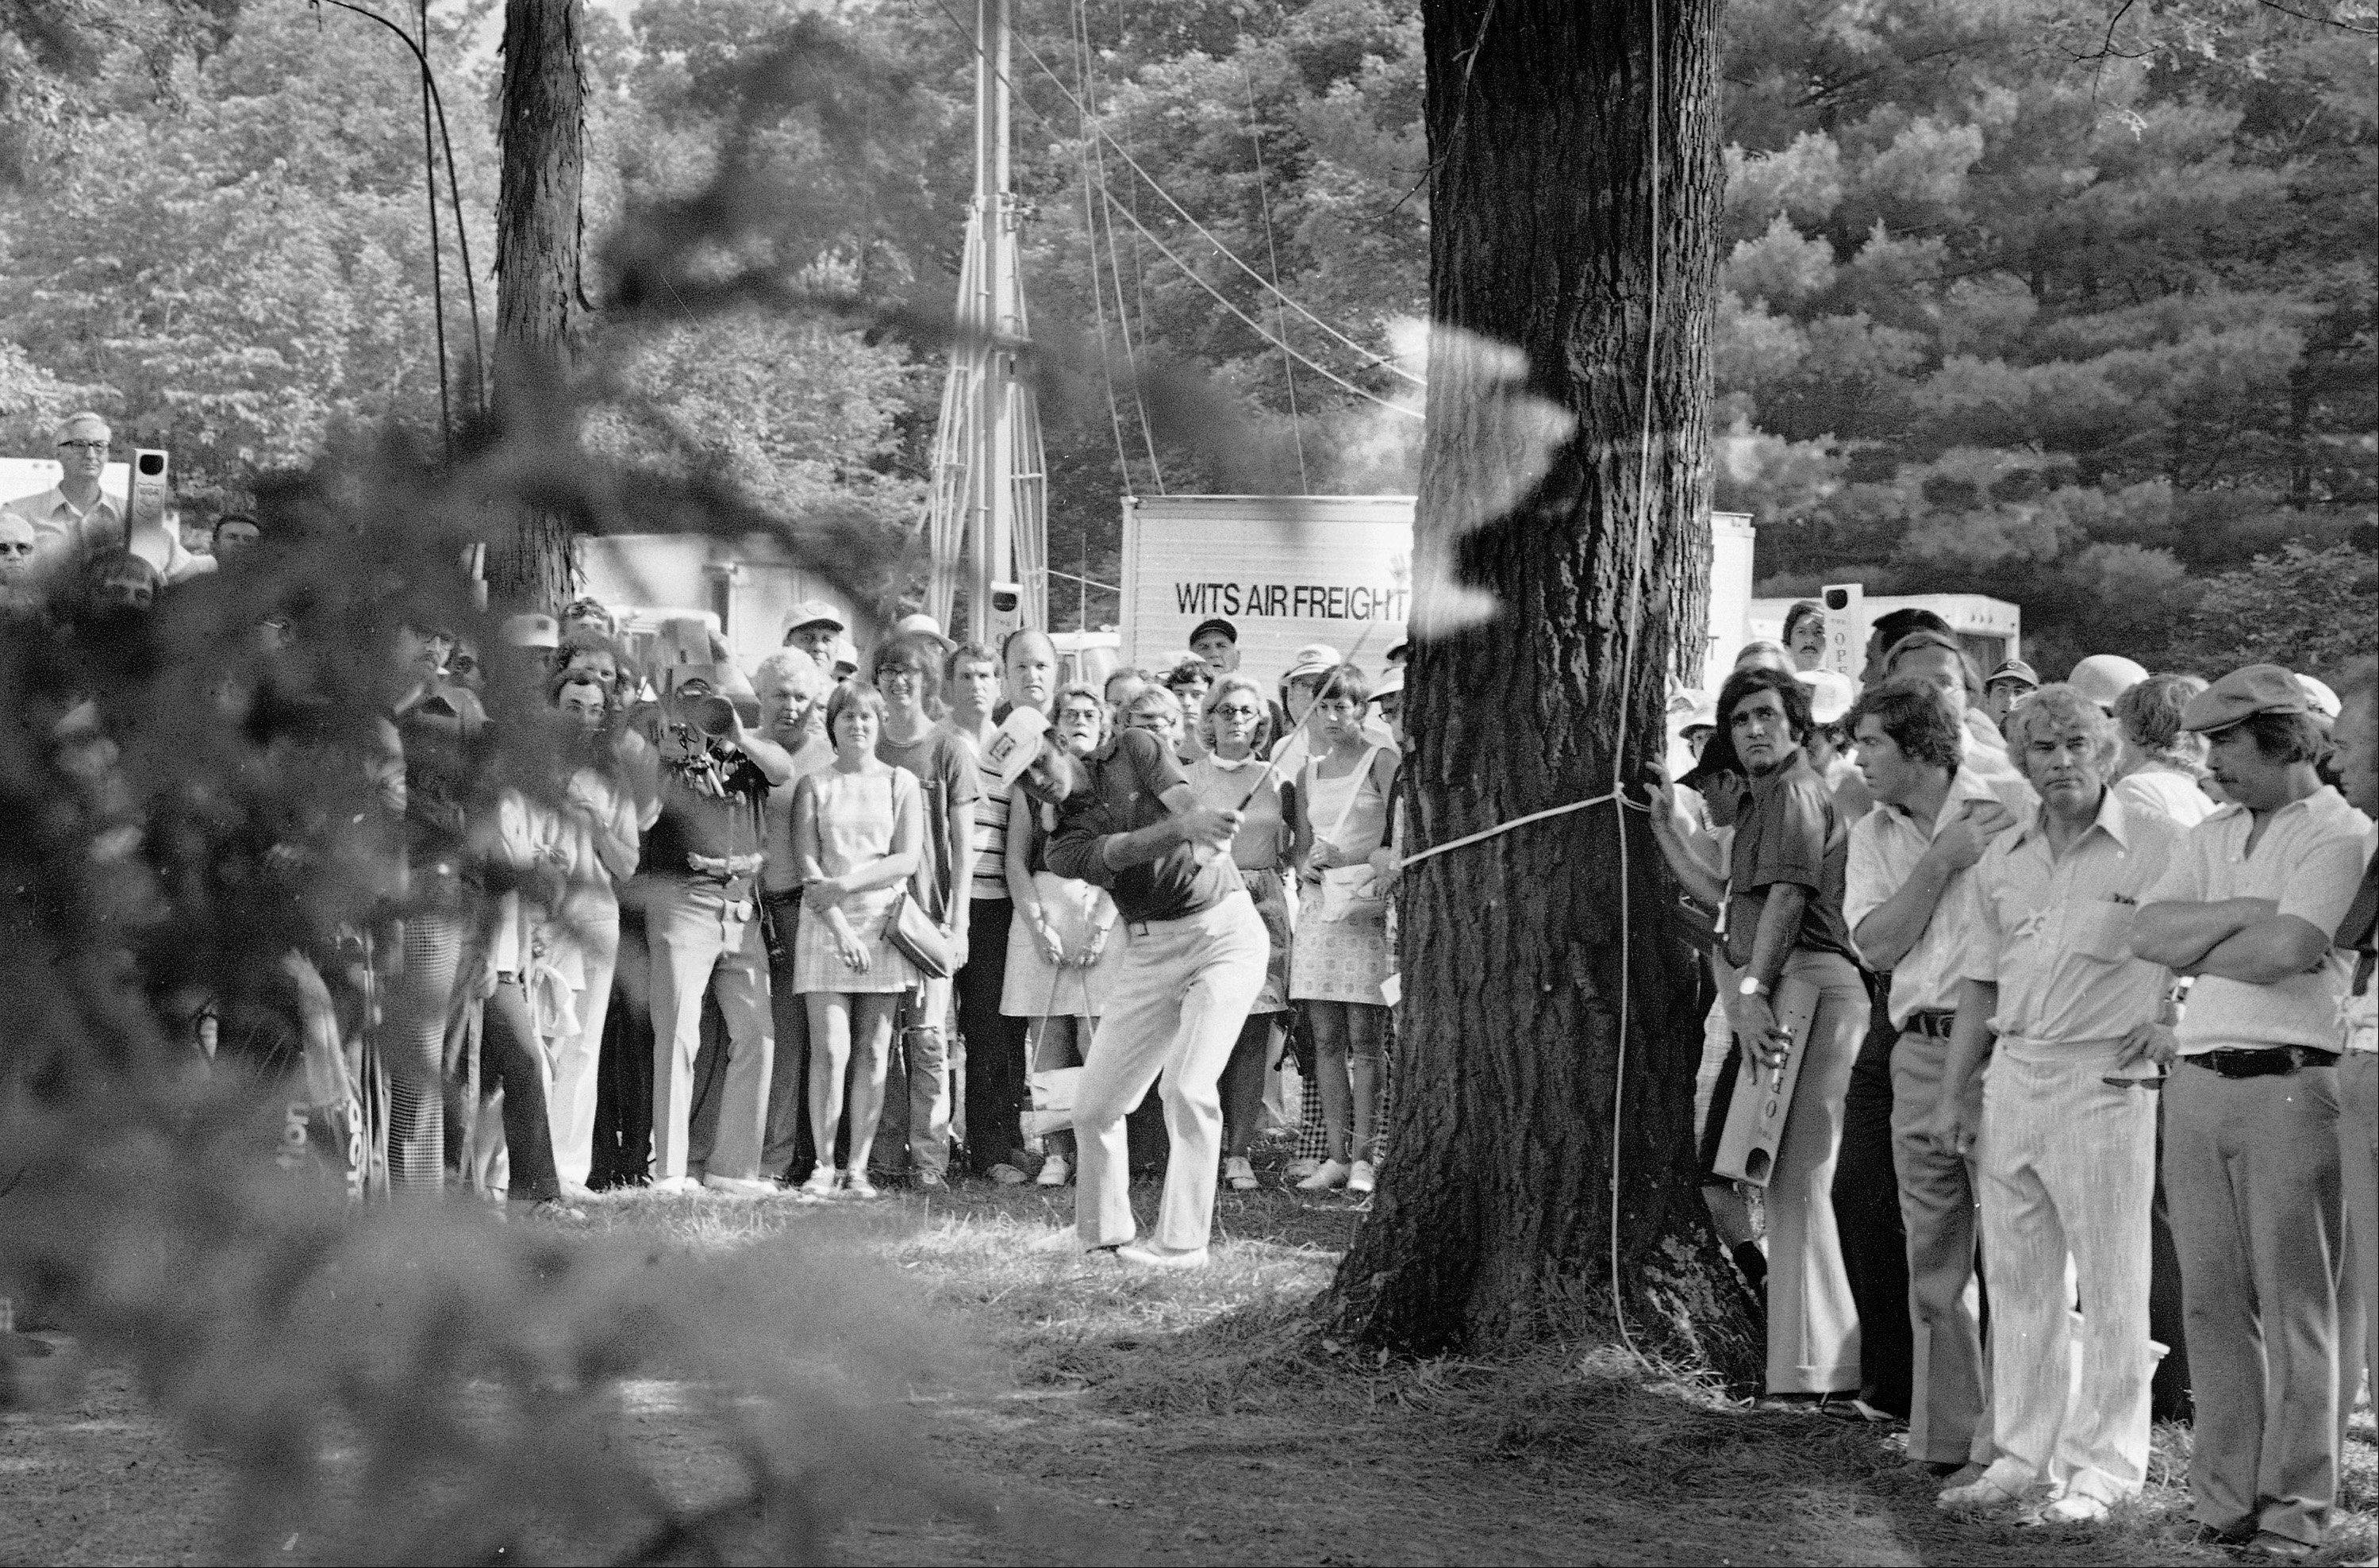 Hitting from the rough in the trees, Lou Graham hits his second shot on Medinah's 18th hole in the playoffs of the U.S. Open, June 23, 1975. The shot landed on the green and Lou went on to par the hole and win the Open by one stroke.